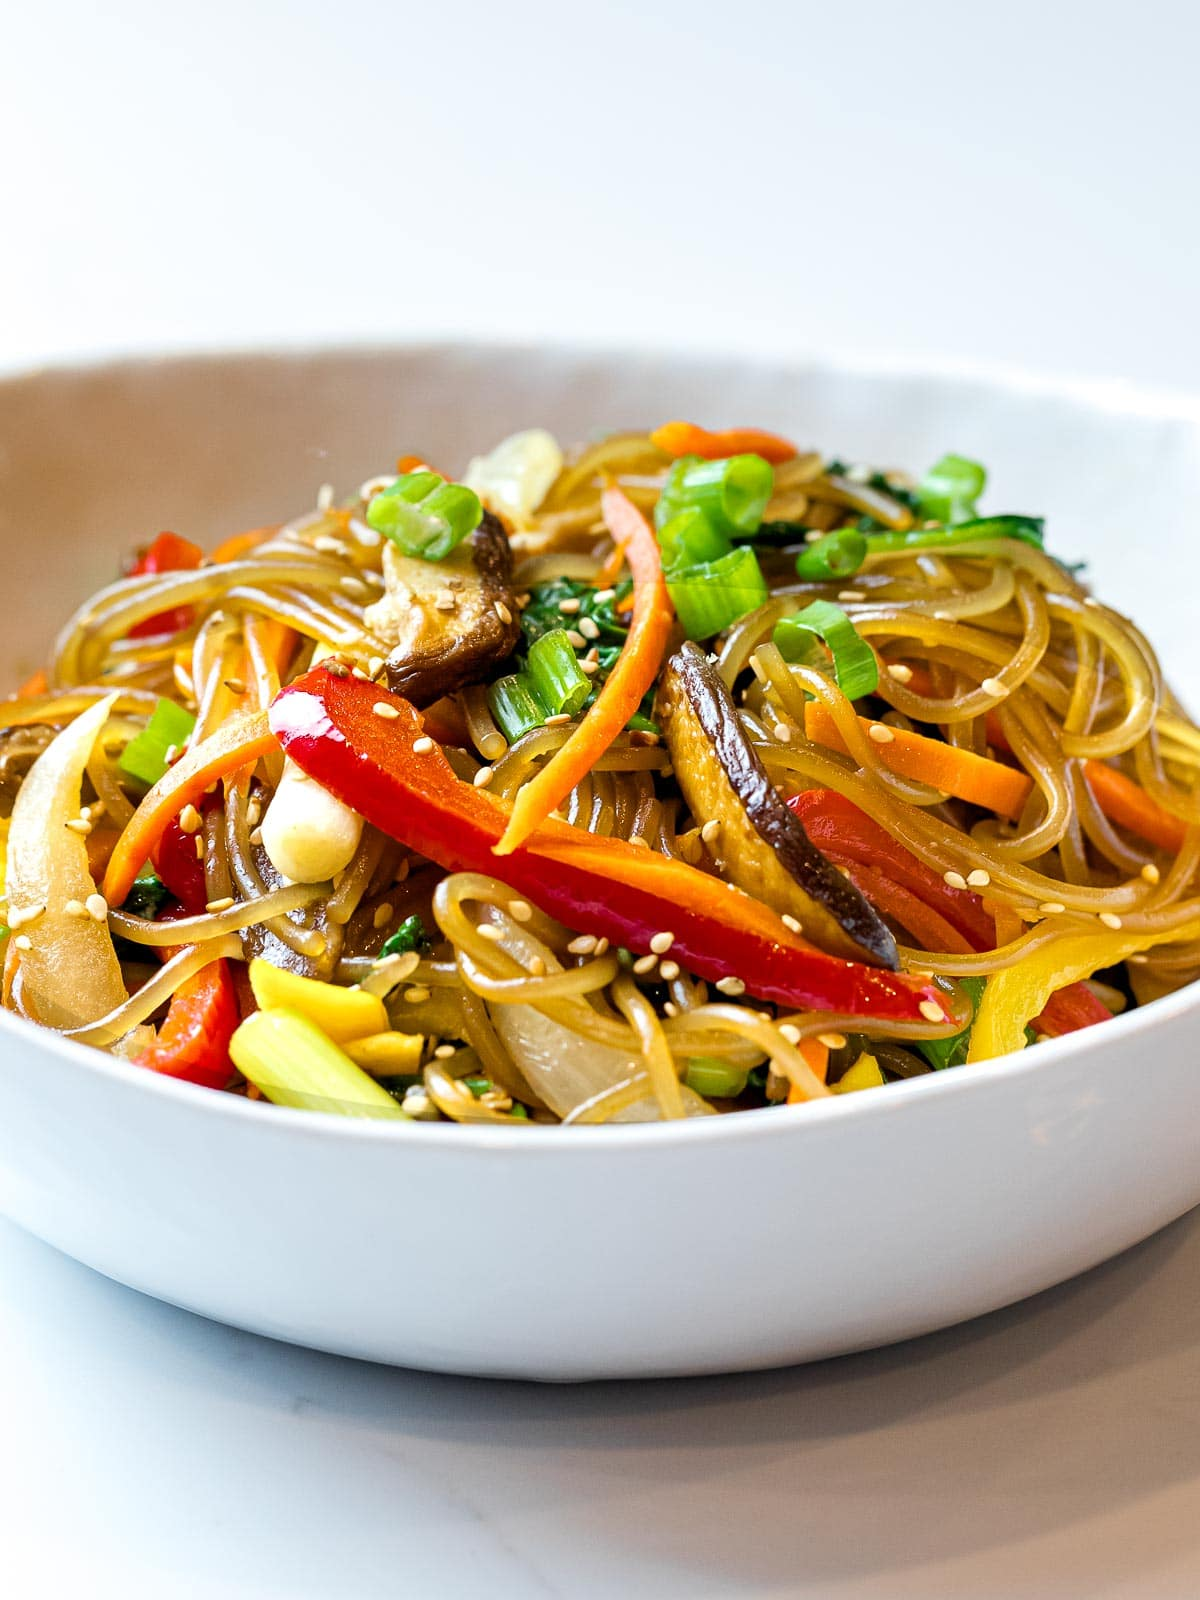 close up of Korean glass noodles, japchae, with colorful stir fried vegetables